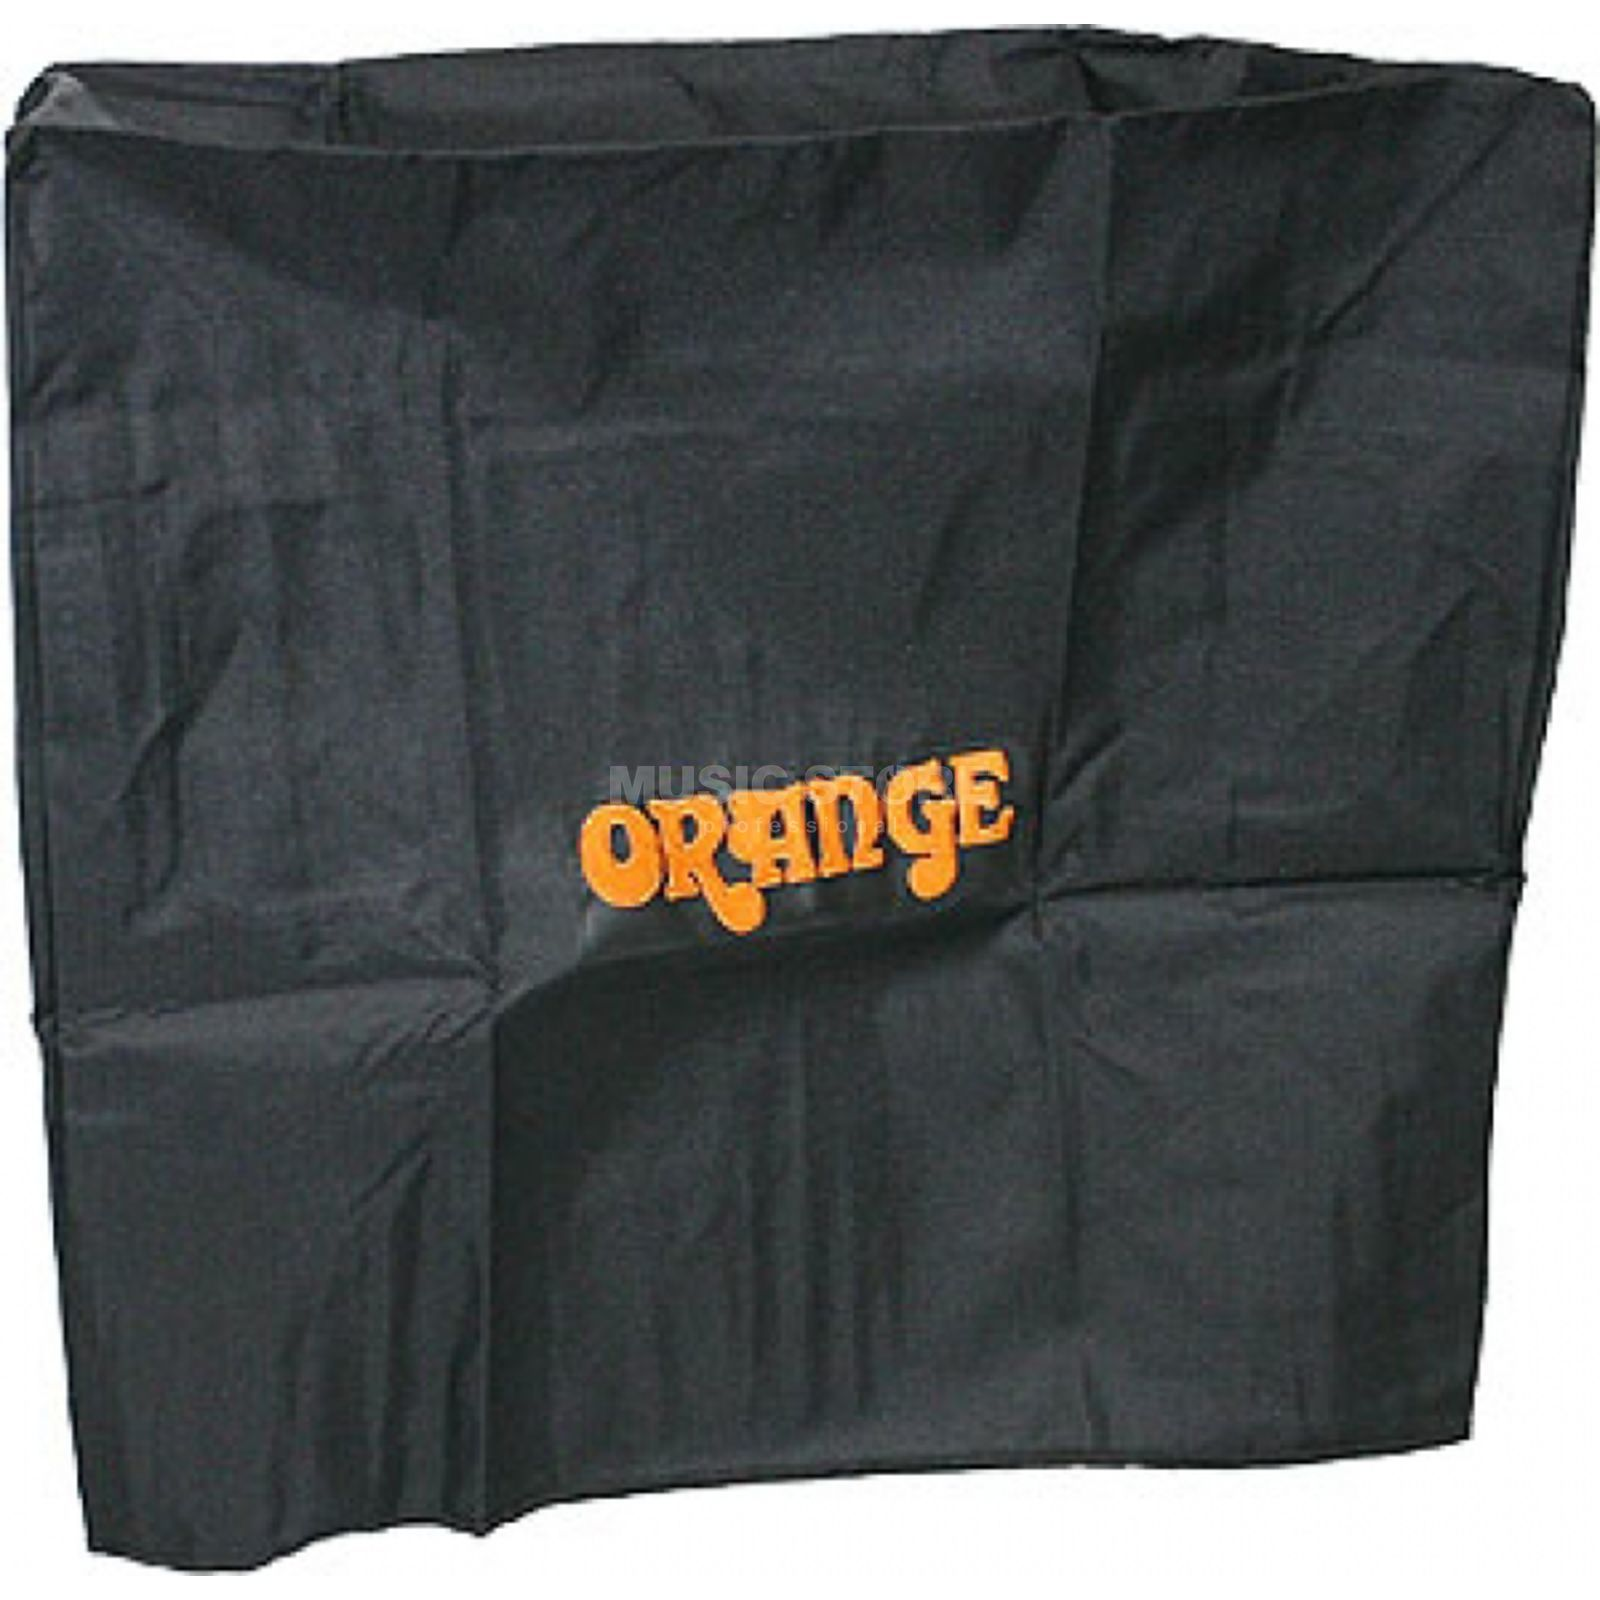 Orange Cover OBC 810 Cabinet  Produktbillede